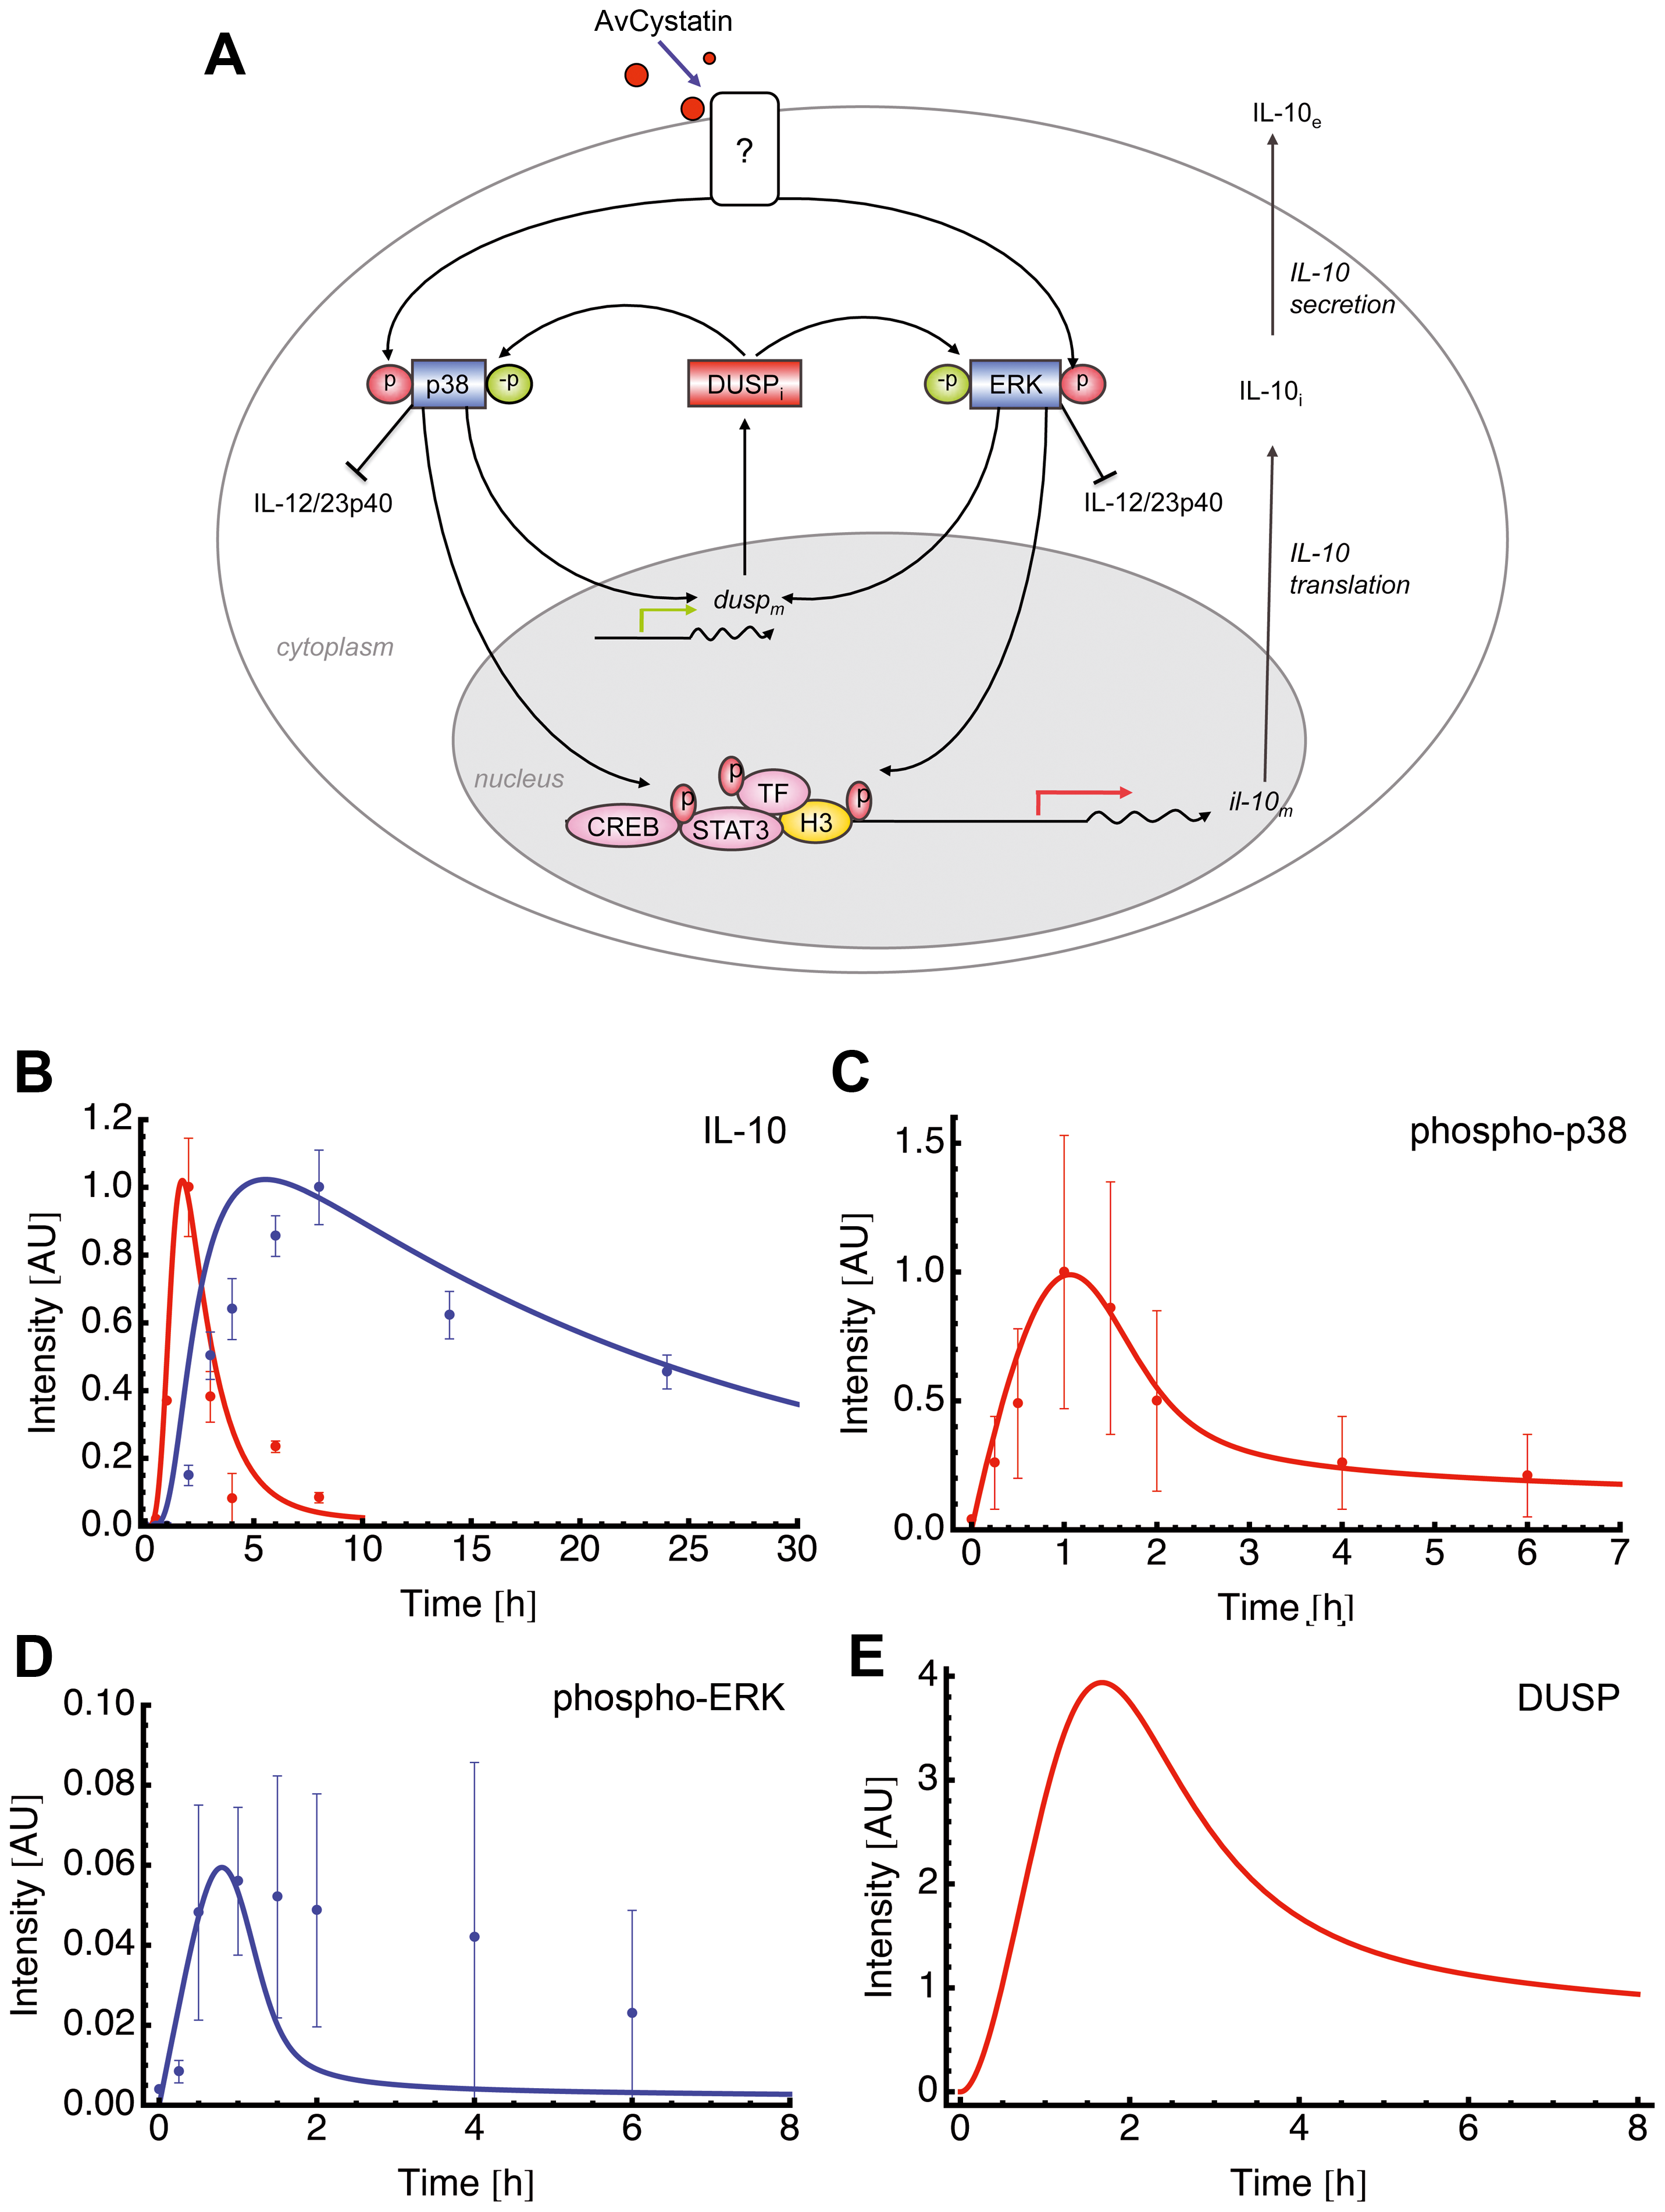 Mathematical model for AvCystatin induced IL-10 expression in macrophages.